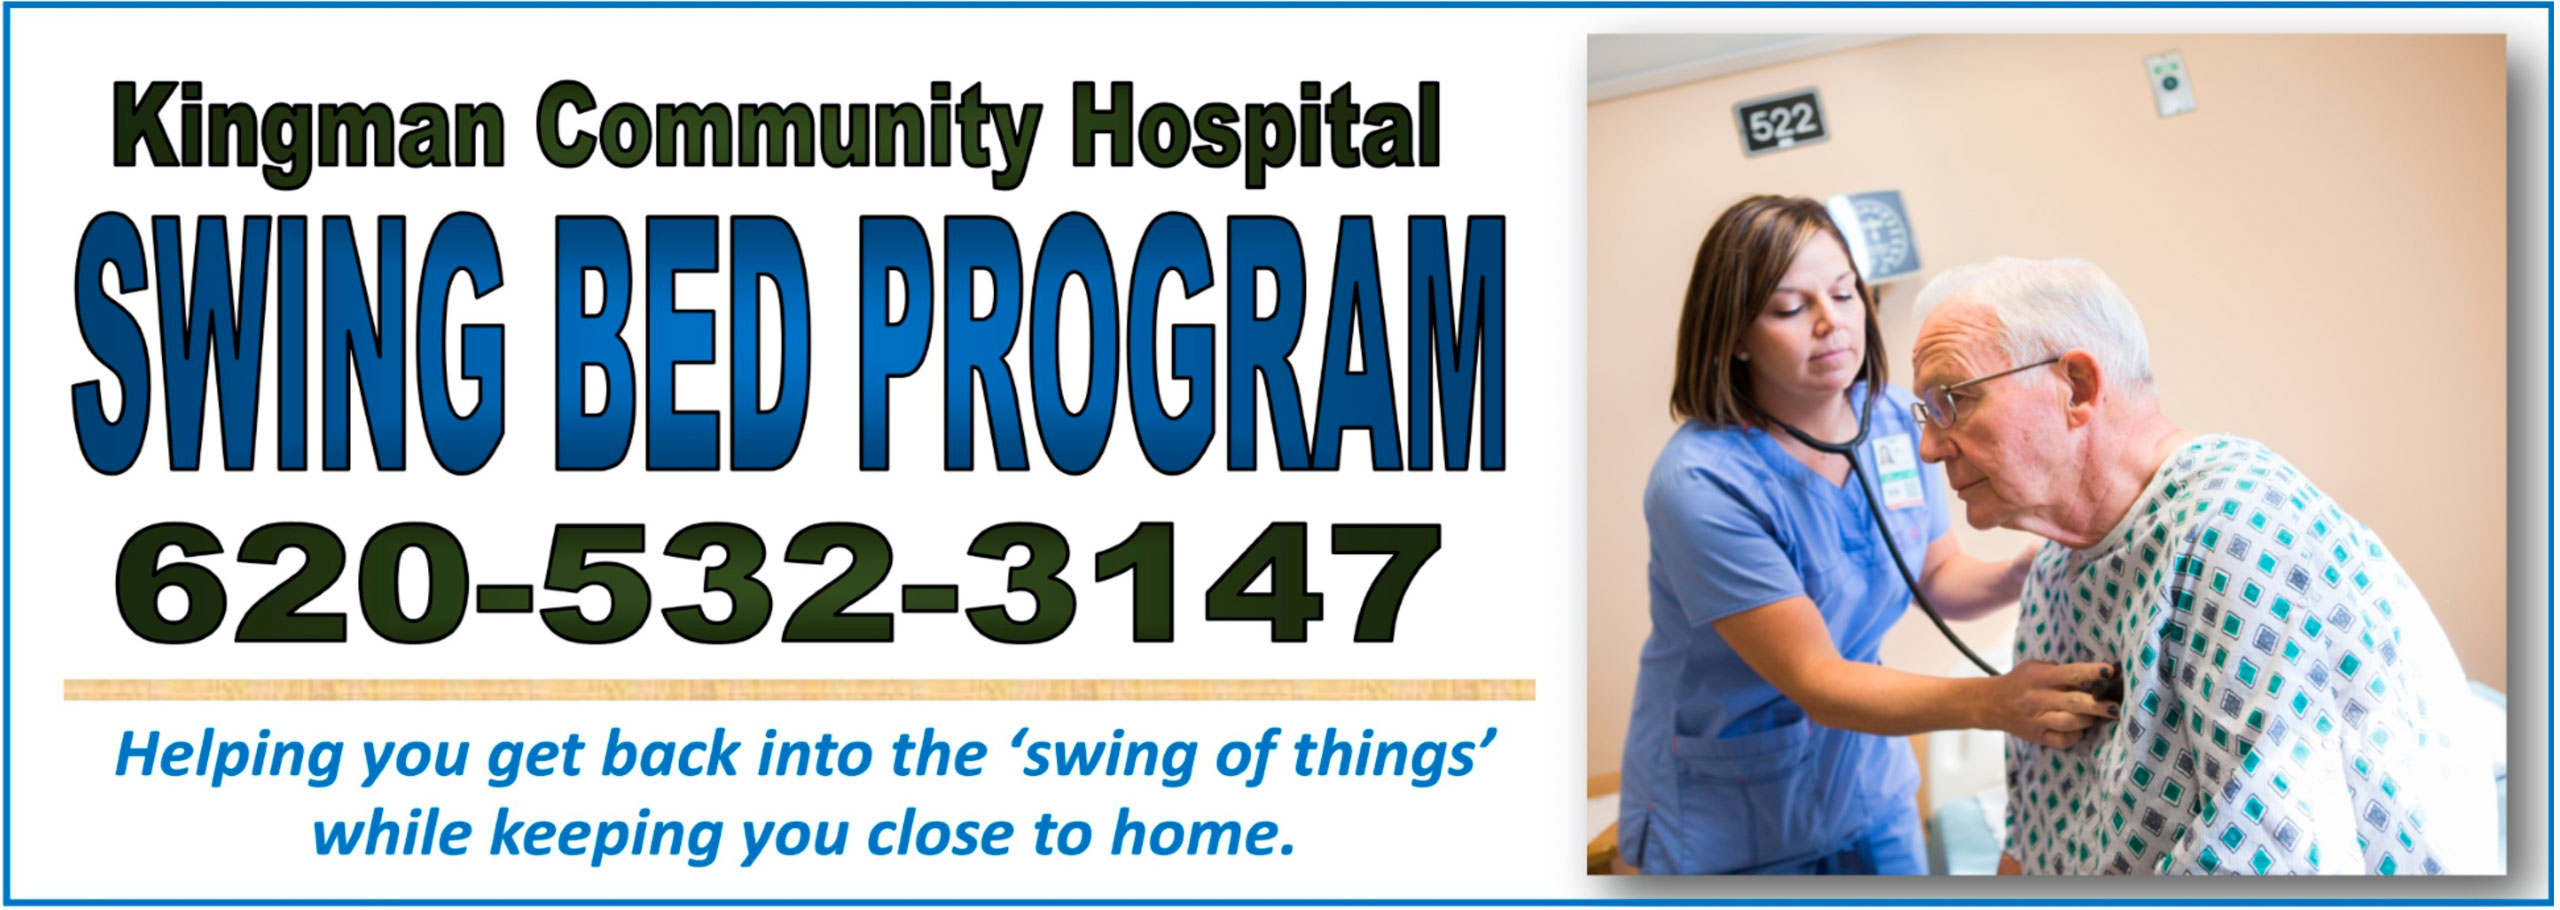 Kingman Community Hospital Swing Bed Program 620-532-3147. Helping you get back into the 'Swing of things' while keeping you close to home.